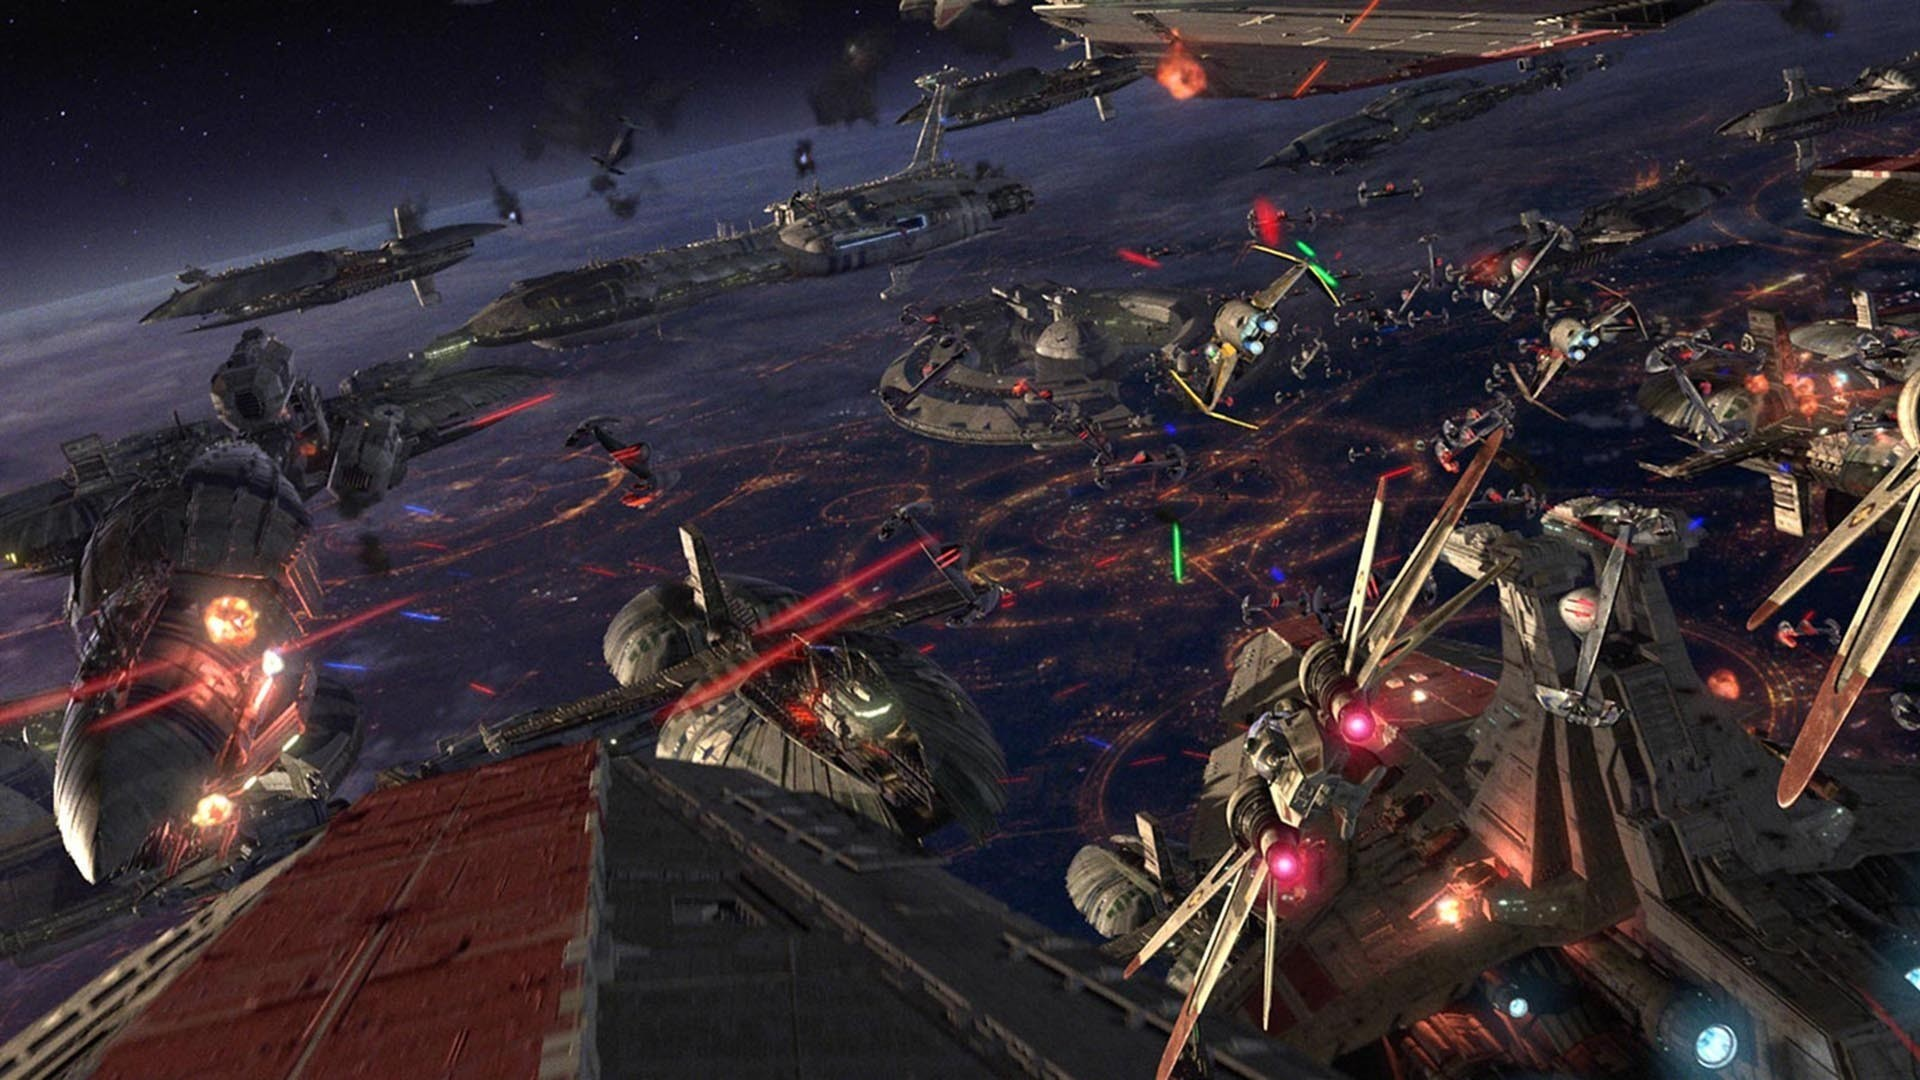 118 Star Wars Space Battle 1920x1080